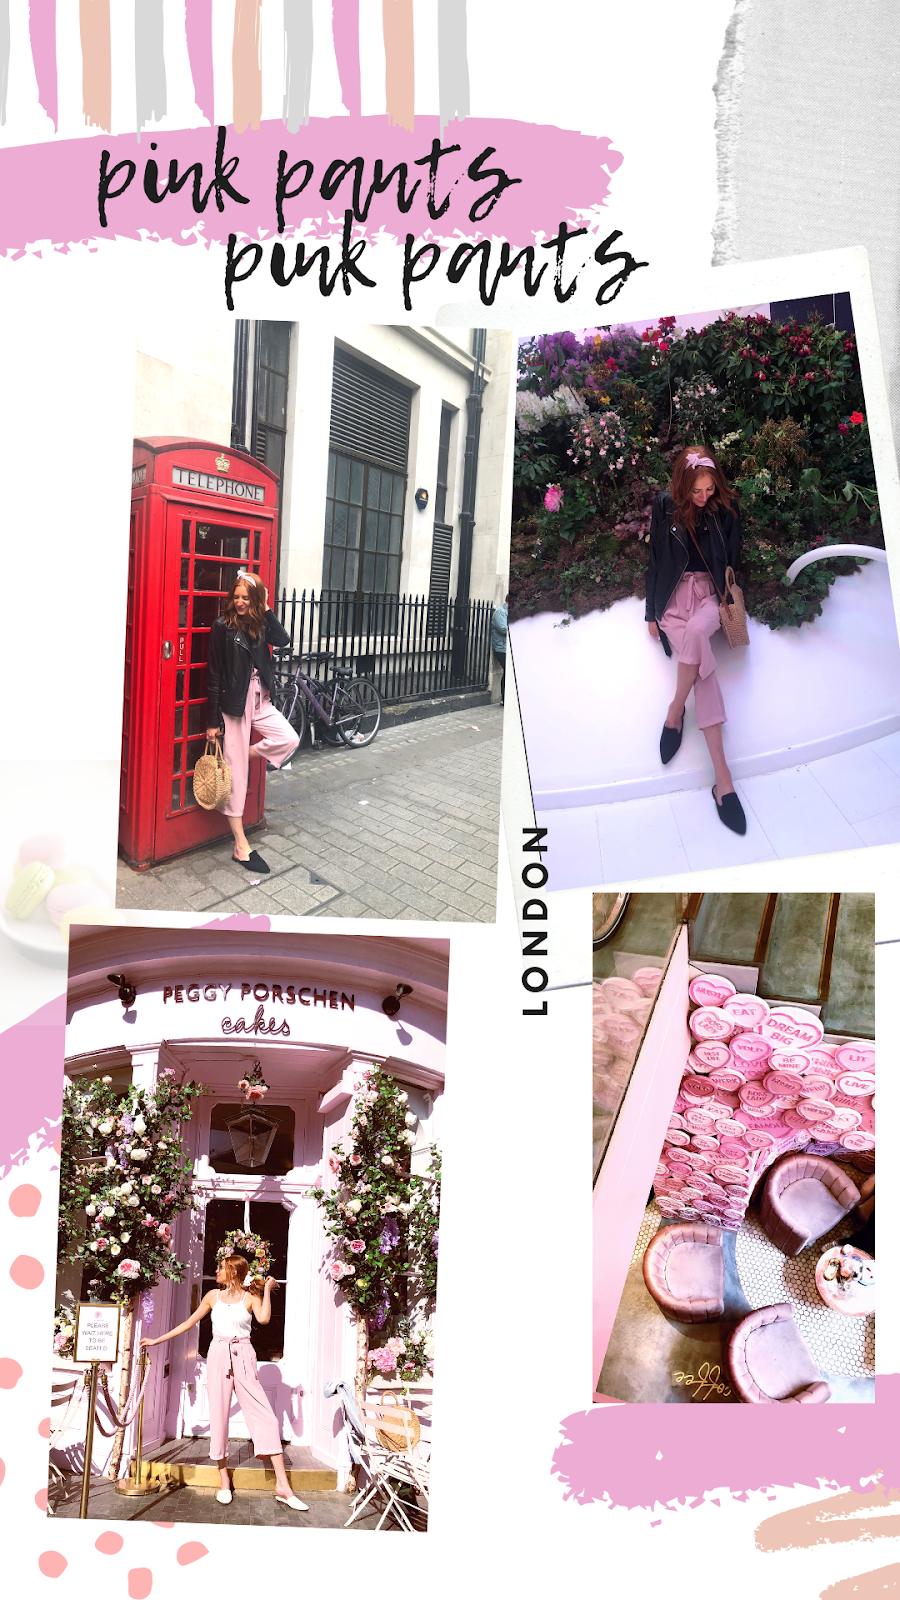 how to style pink pants in london and amsterdam